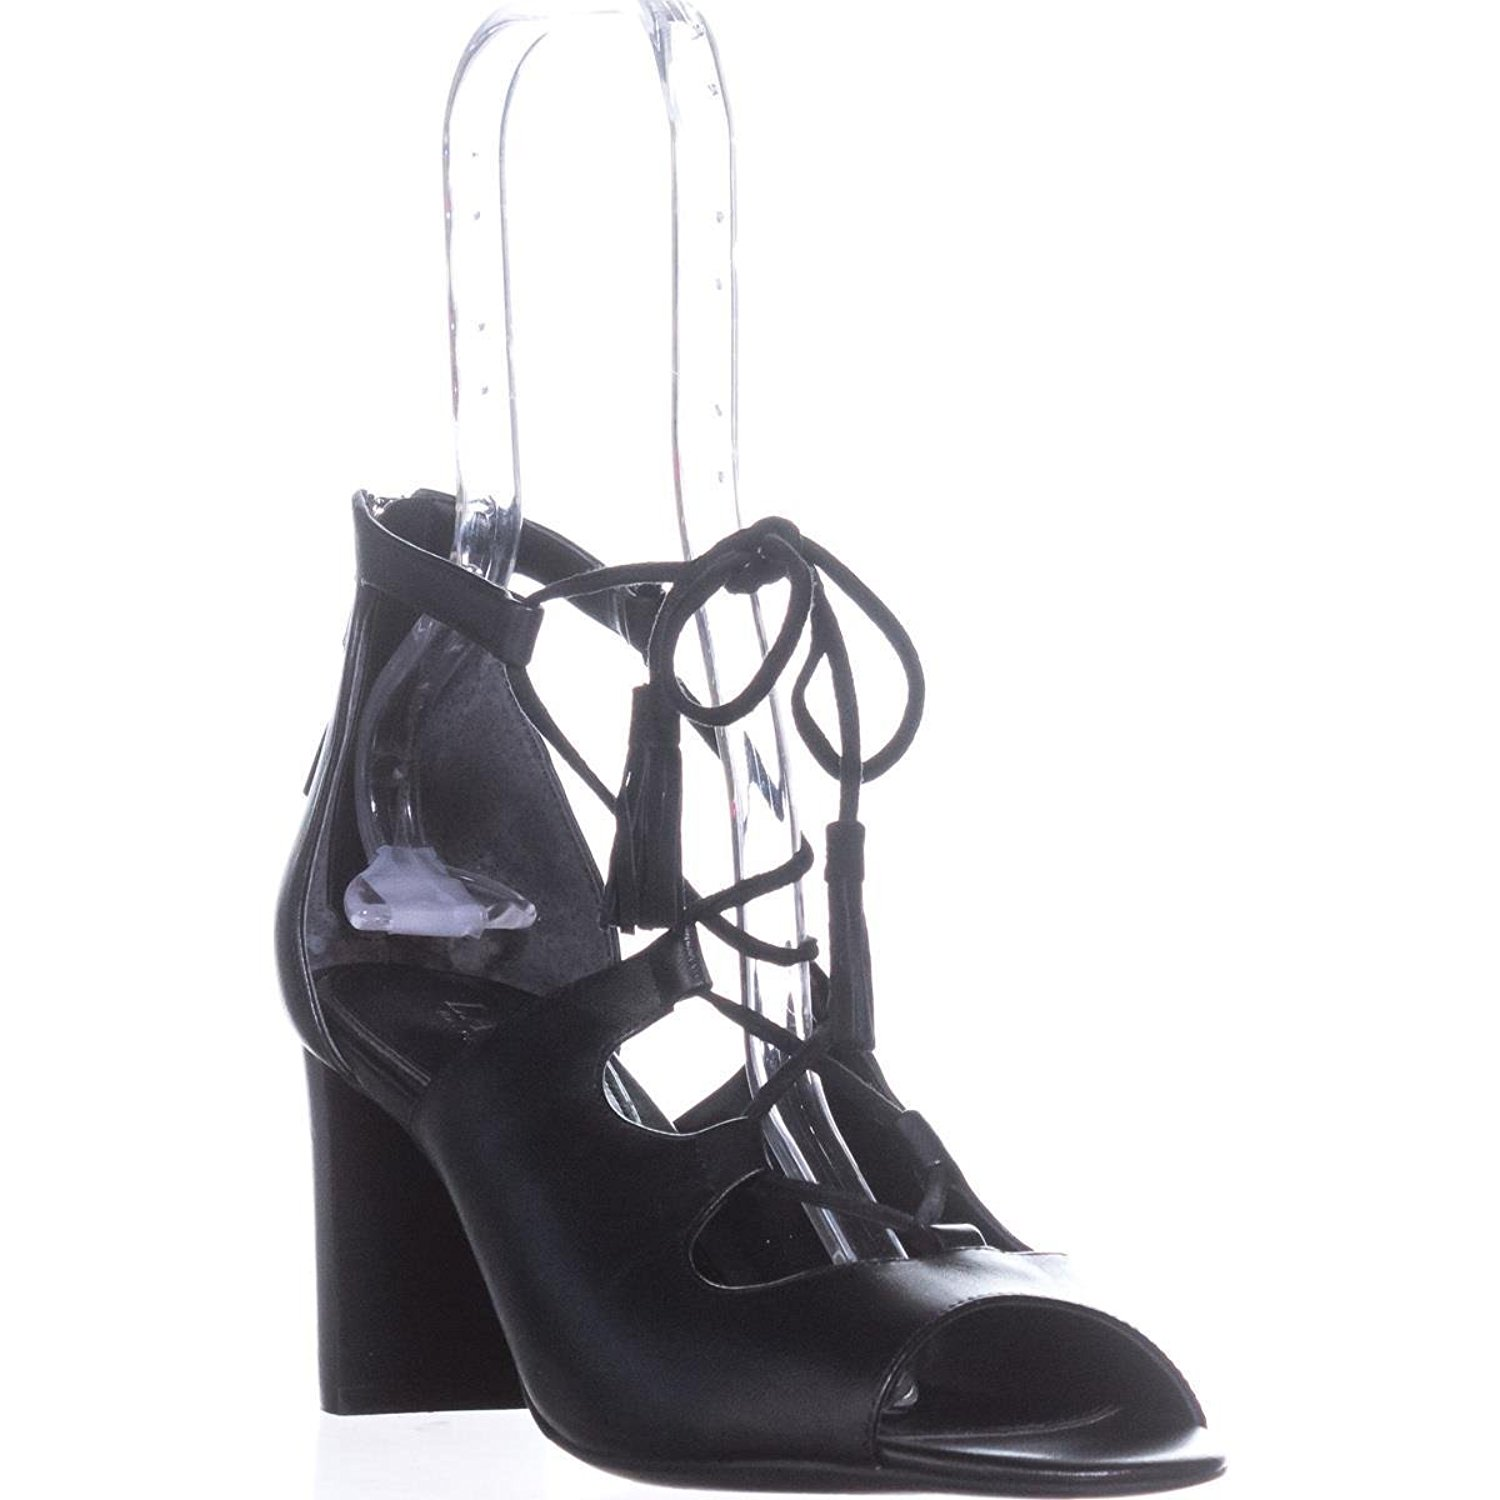 46b10f45a48 LAUREN by Ralph Lauren Womens Hasel Leather Open Toe Casual Strappy Sandals